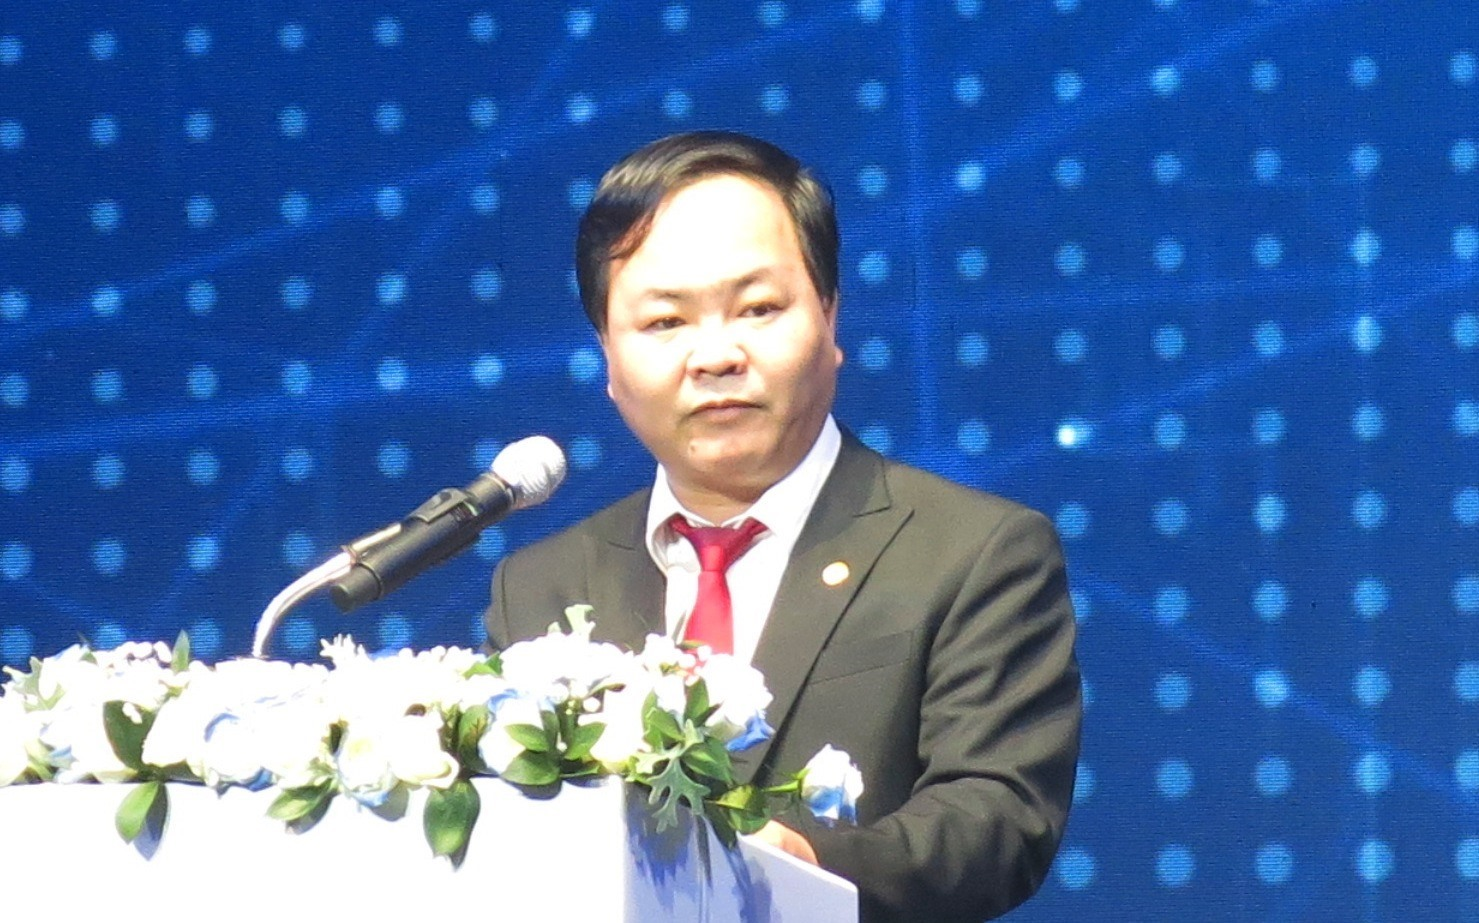 Nguyen Hong Quang at the event